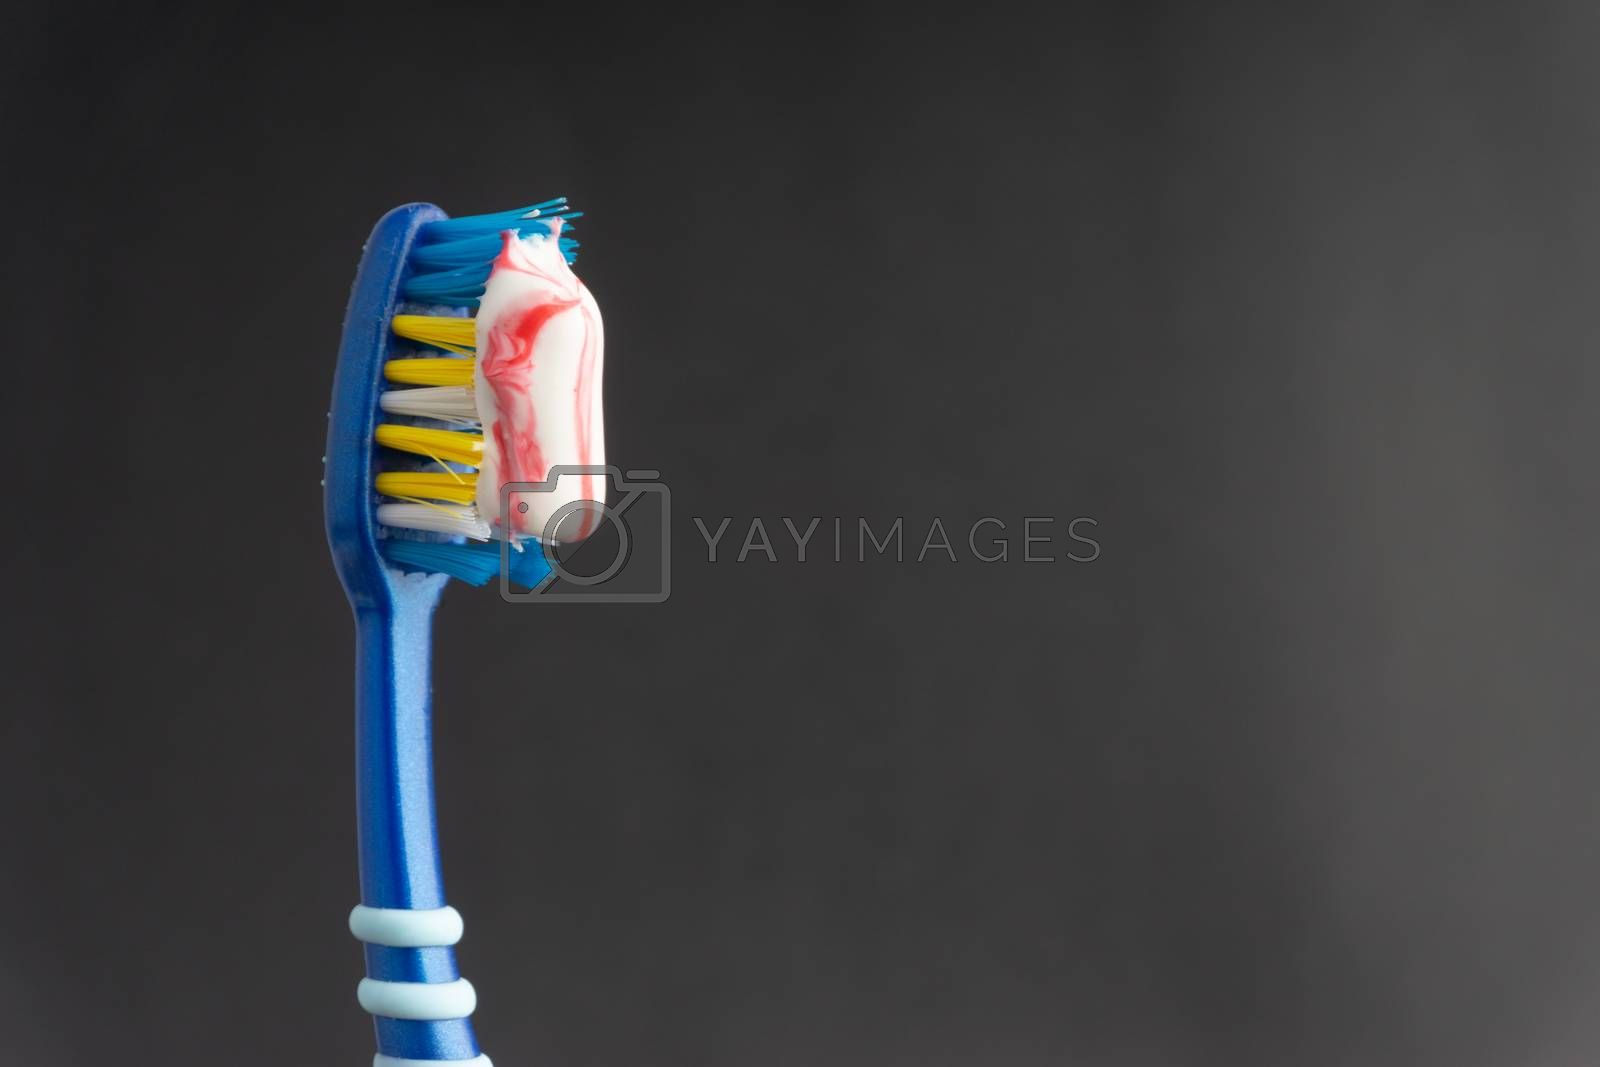 Toothbrush closeup on white background. Healthy concept